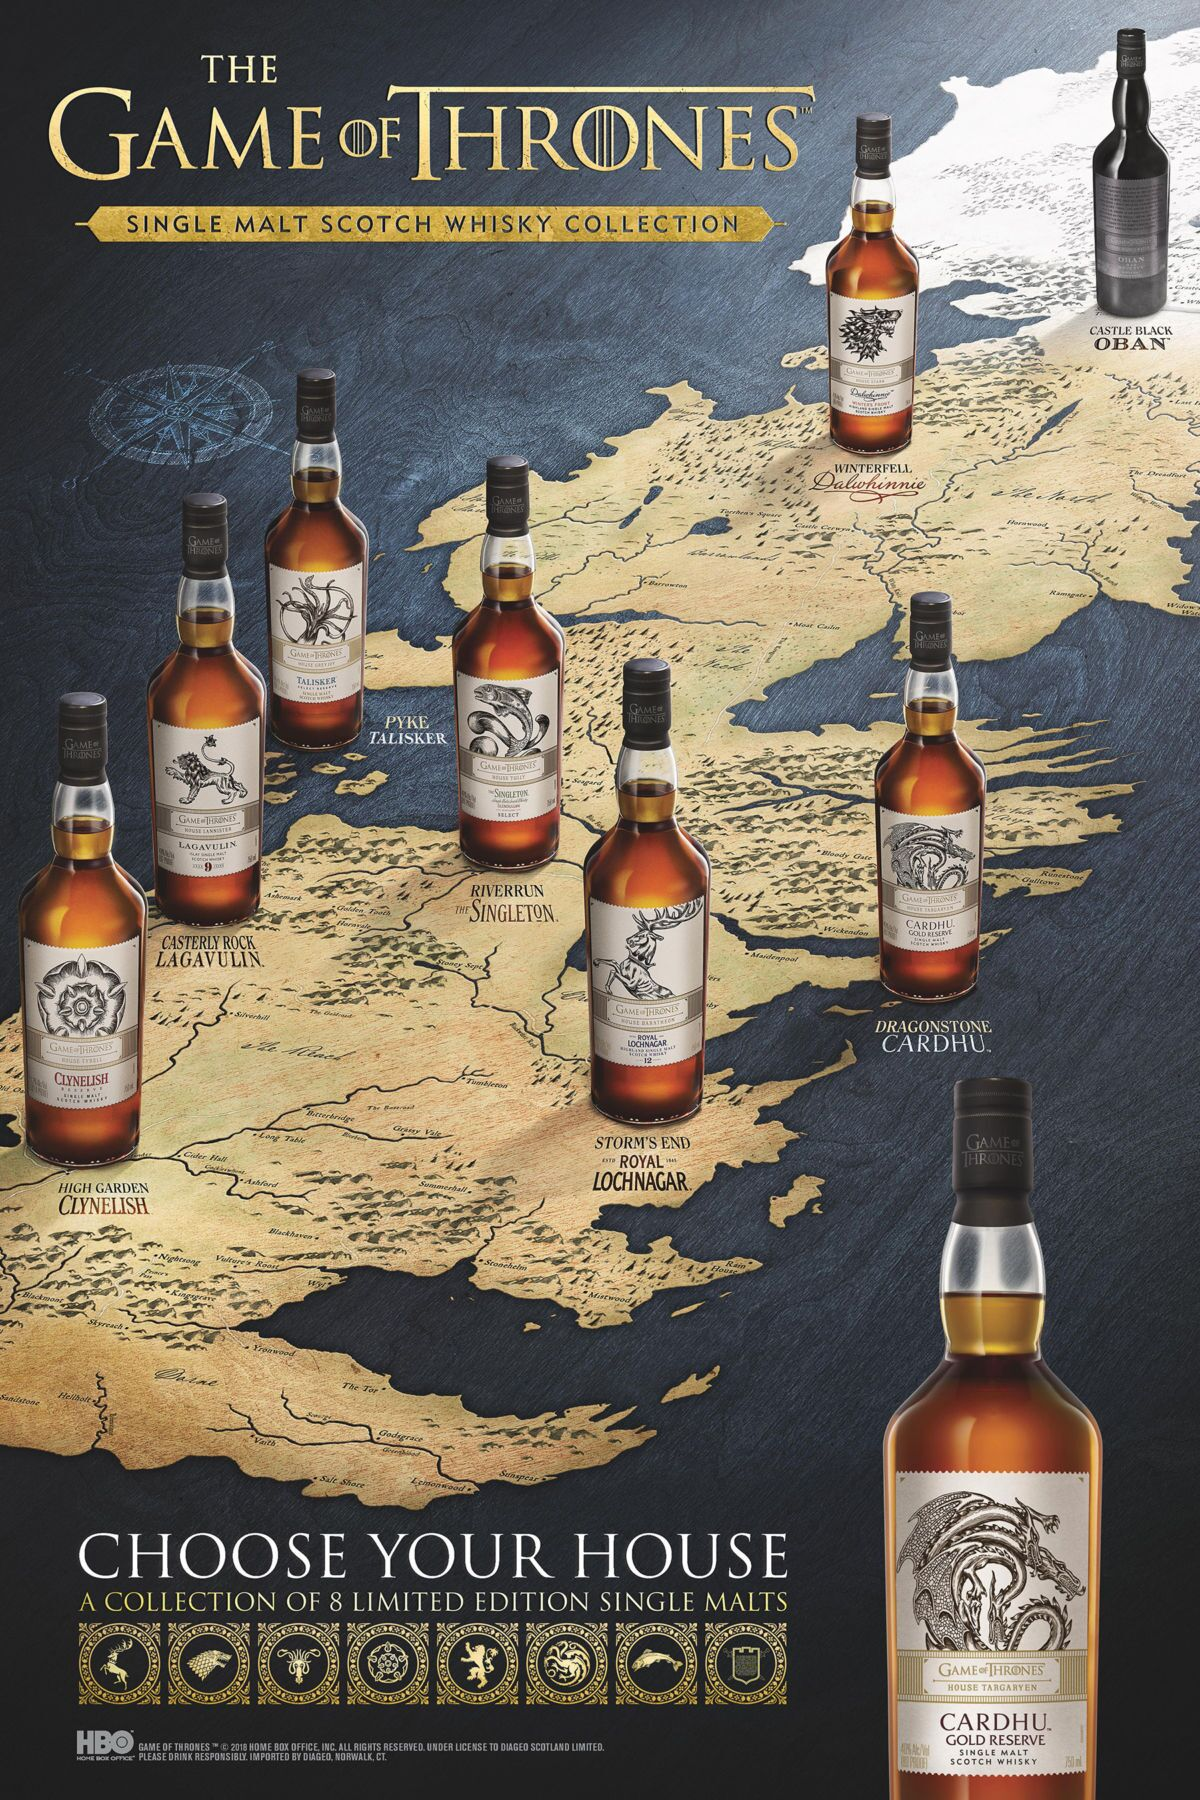 Johhnie Walker celebrates the legacy of Game of Thrones with new whisky